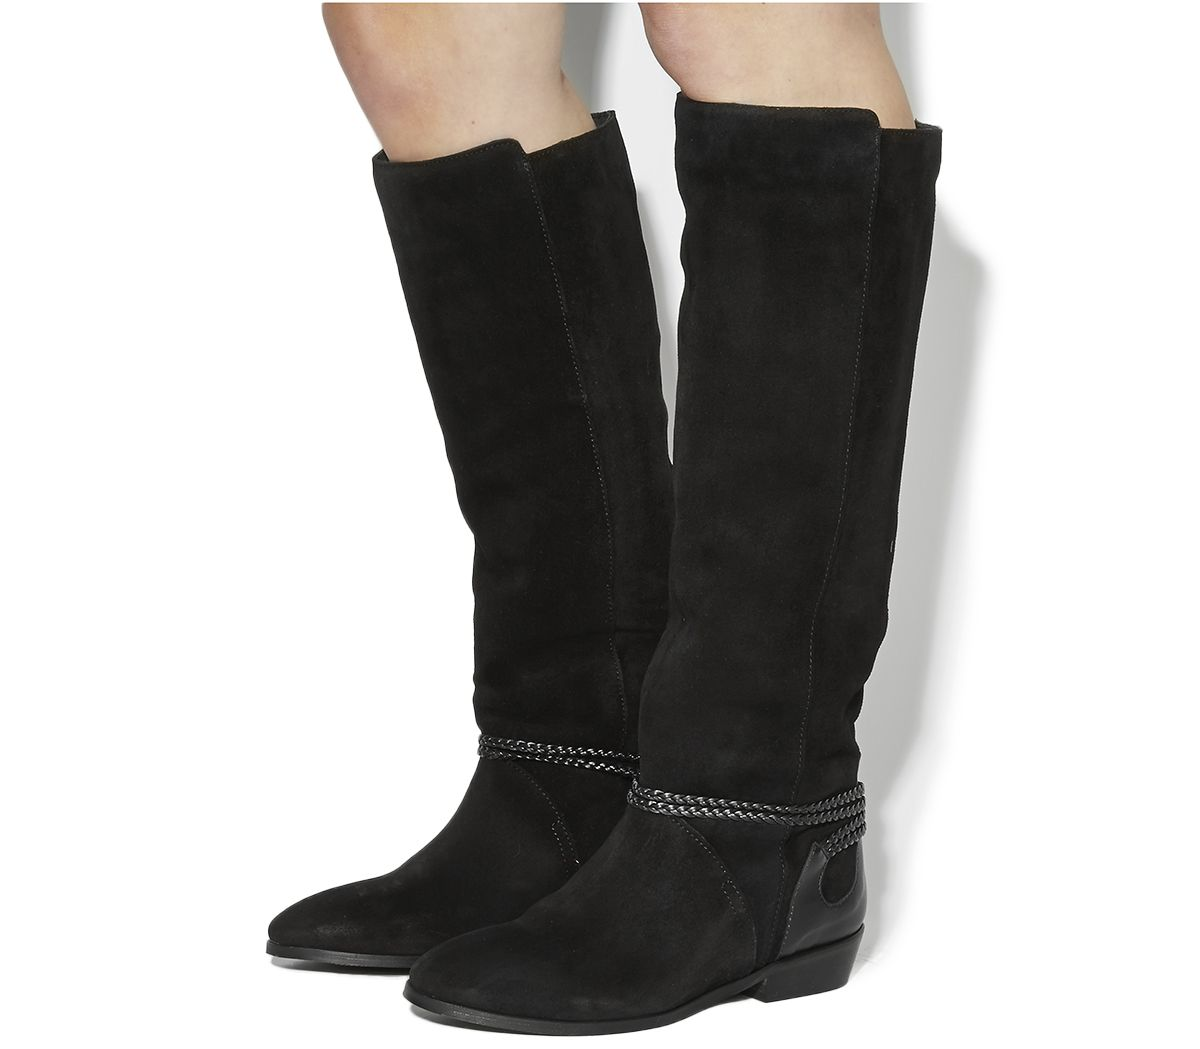 Office Escape Slouch Boots Black Suede Knee Wish List